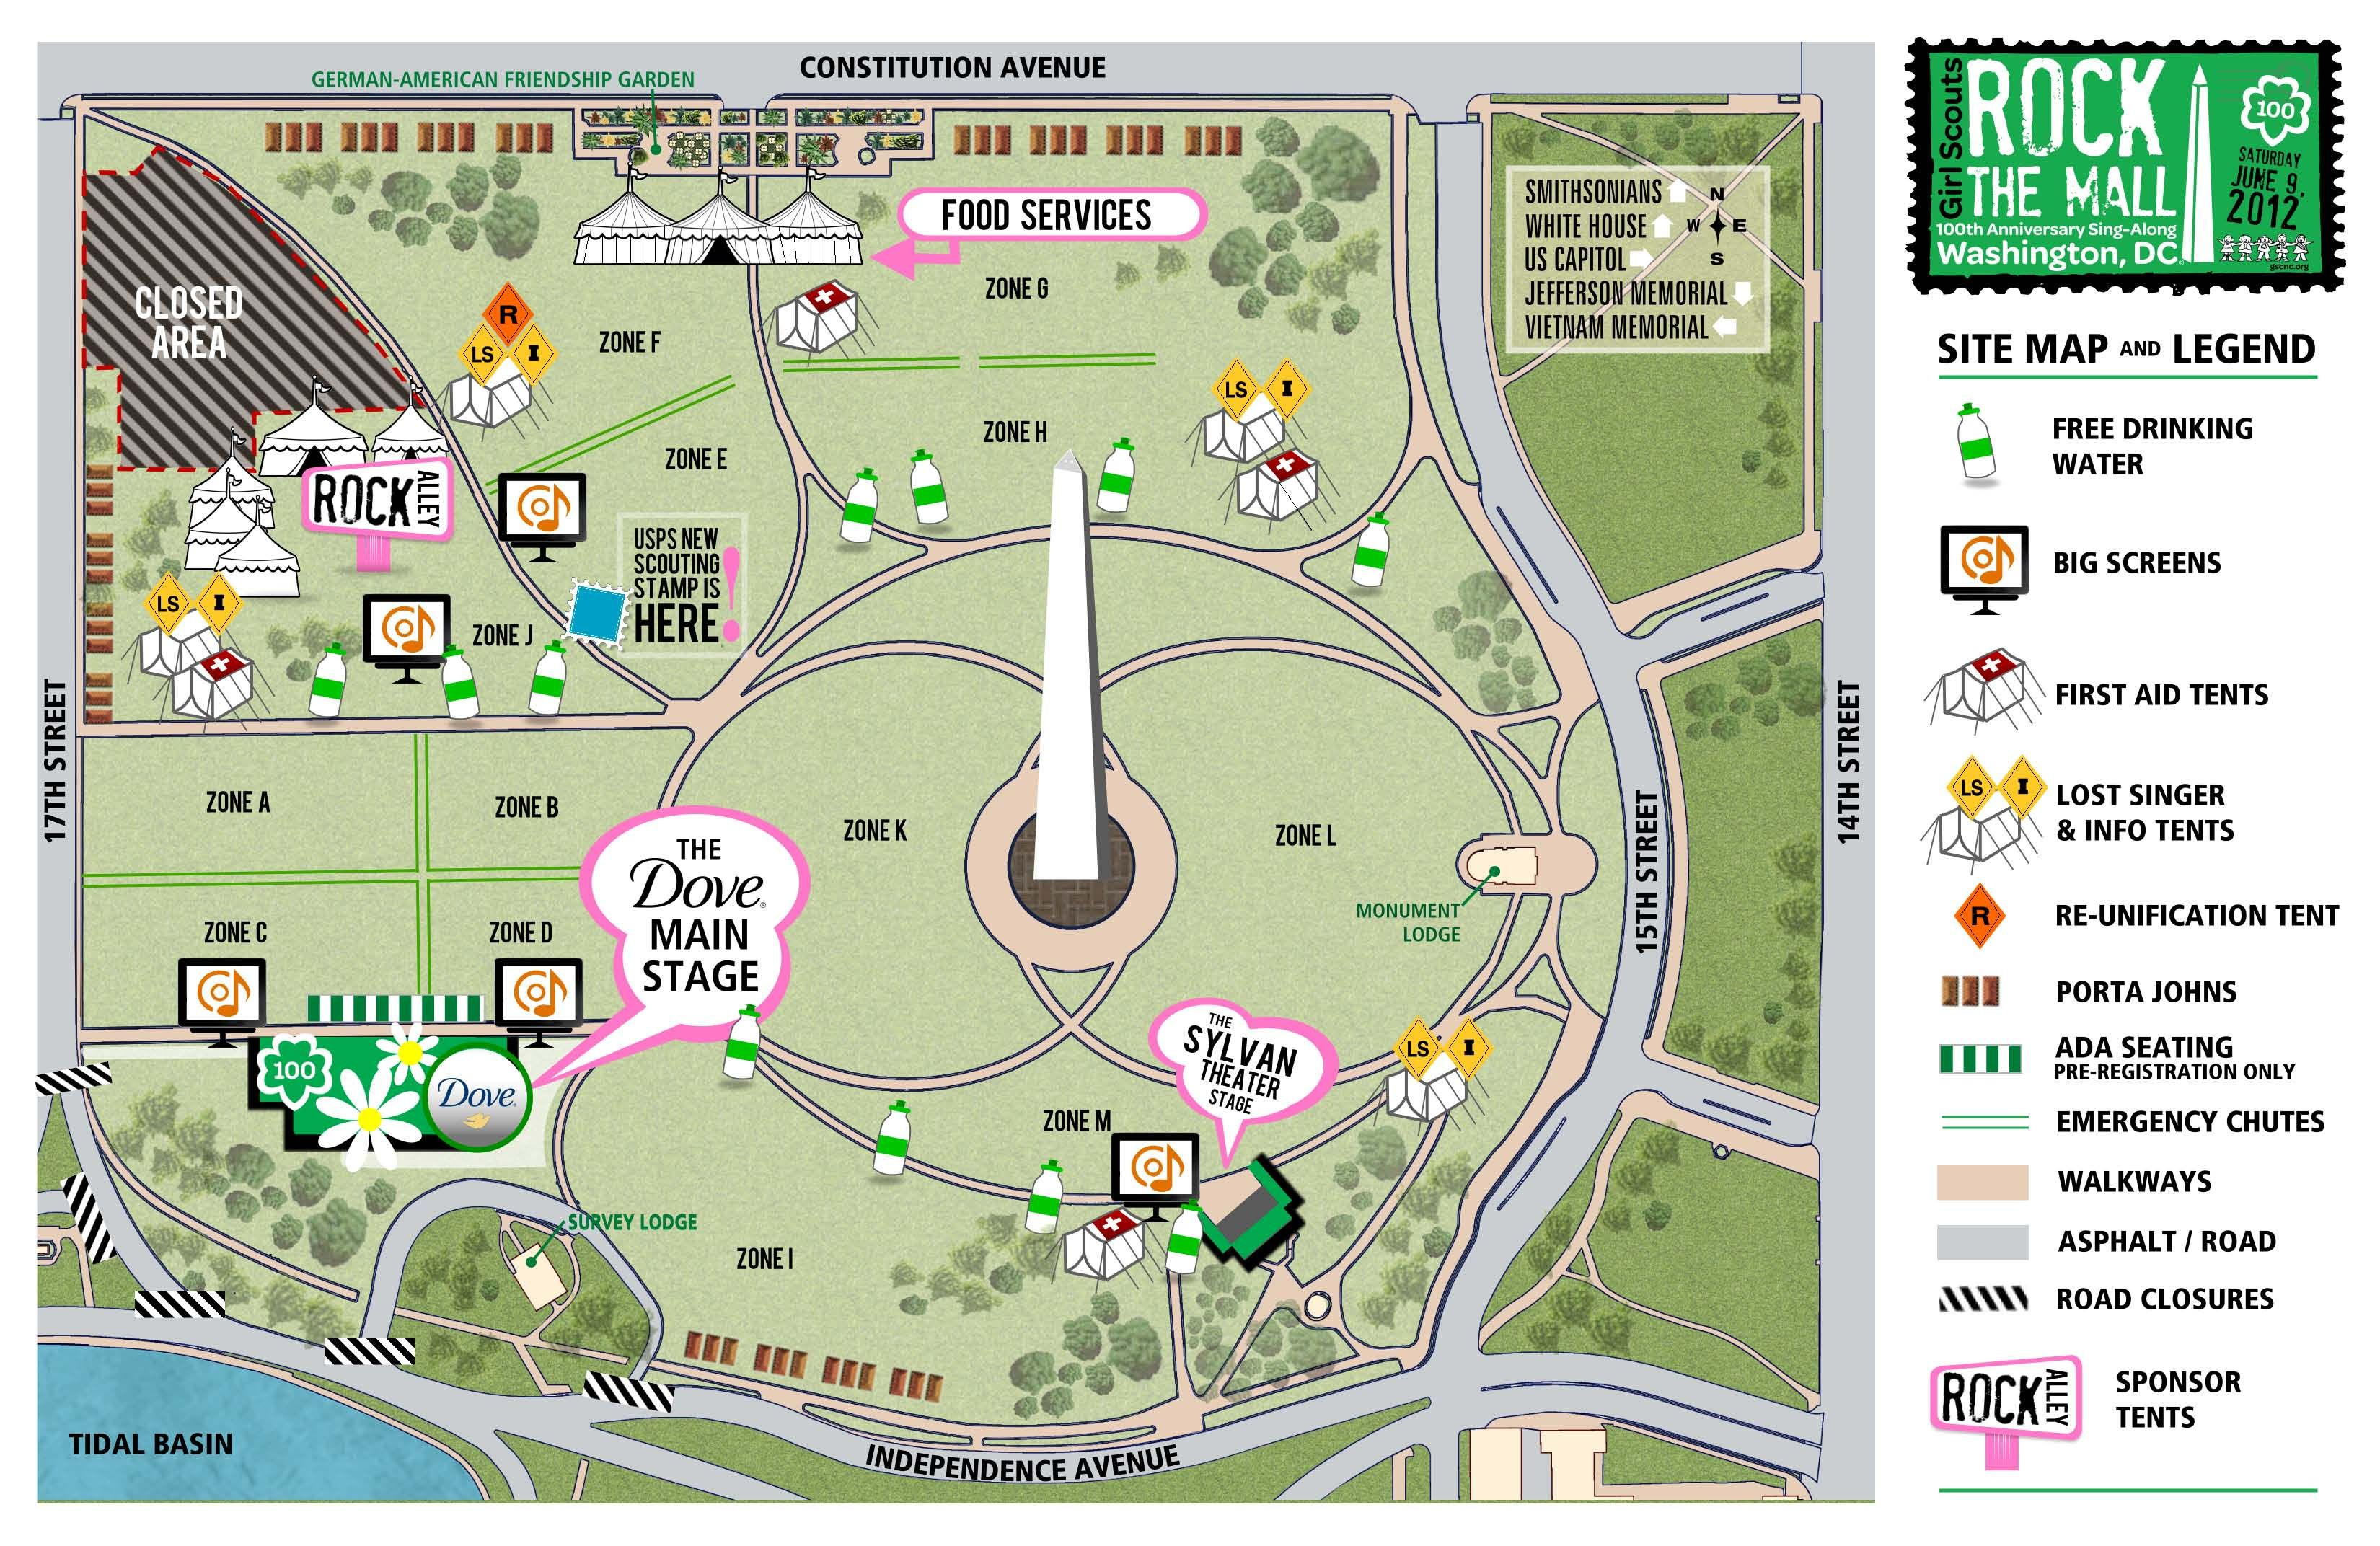 Rock The Mall Resources Including Identification Cards